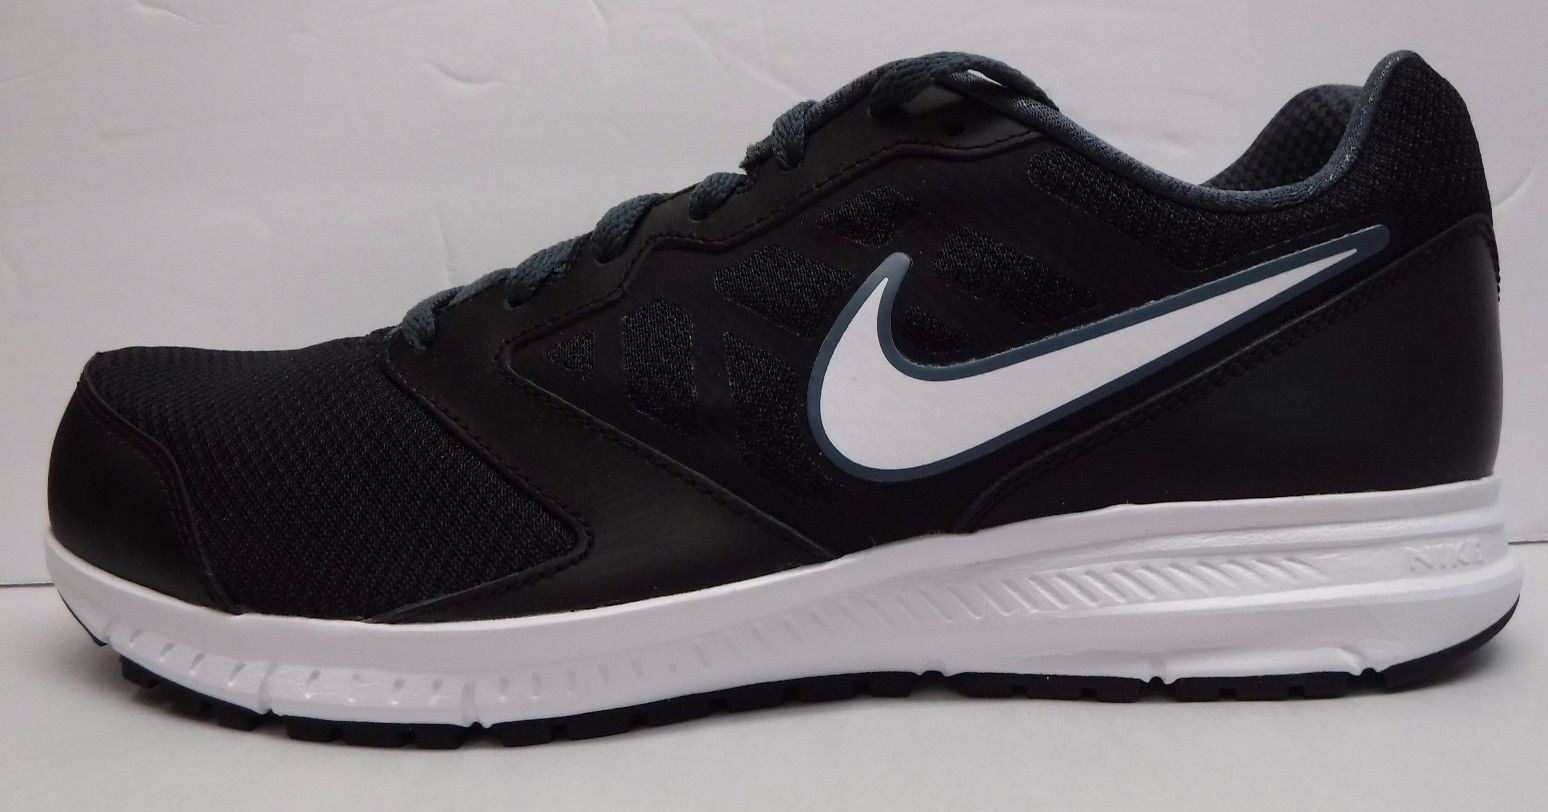 Nike Size 8.5 Wide 4E Black Sneakers New Mens Shoes